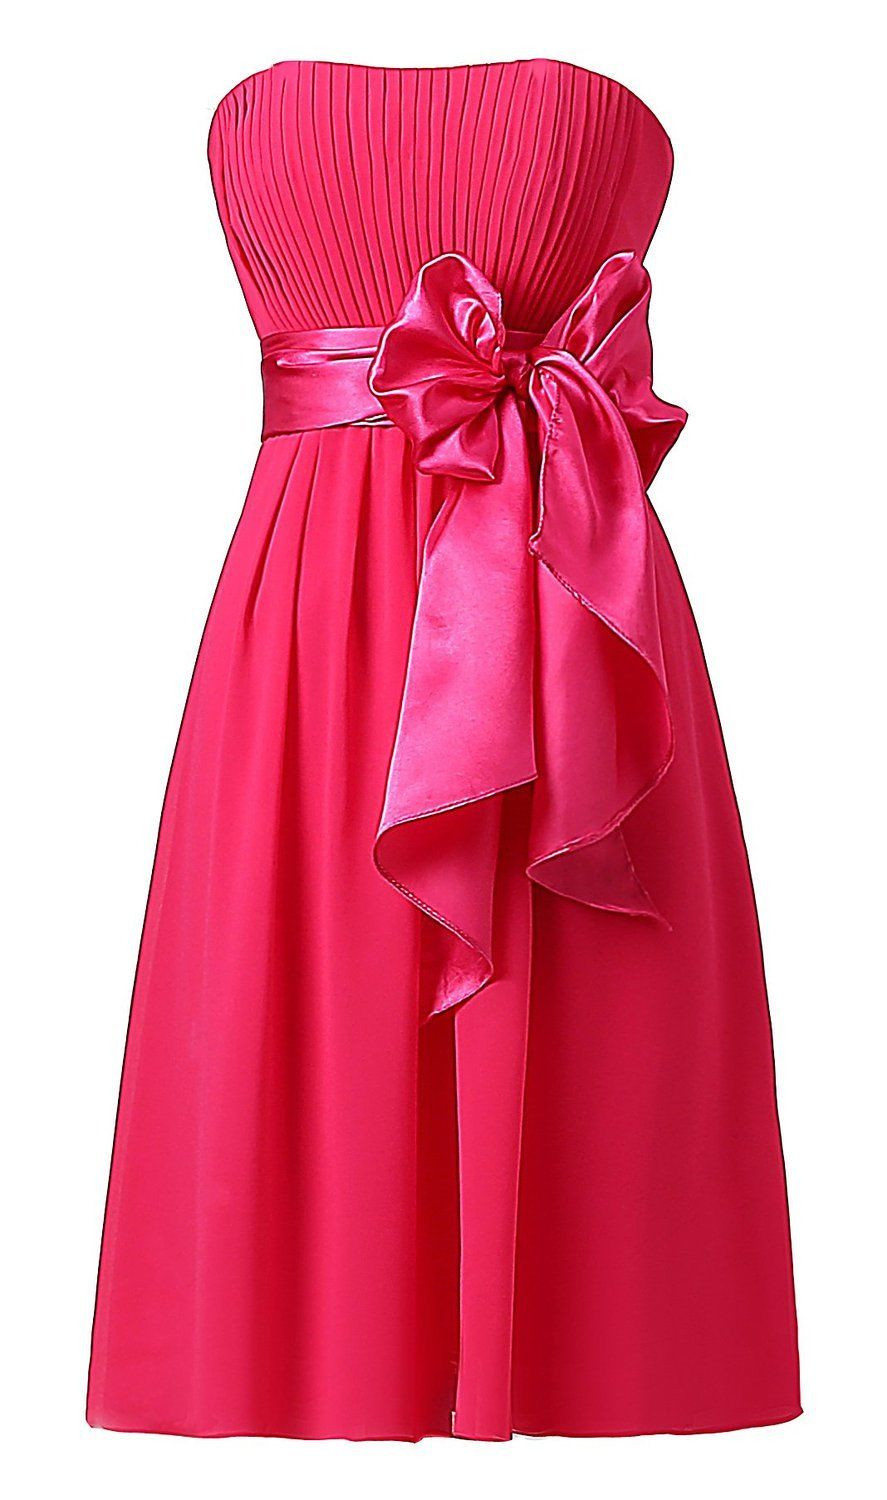 2016 Best Selling Chiffon Knee Length vestido de festa longo robe de soiree short bridesmaid dresses vestidos de novia 7